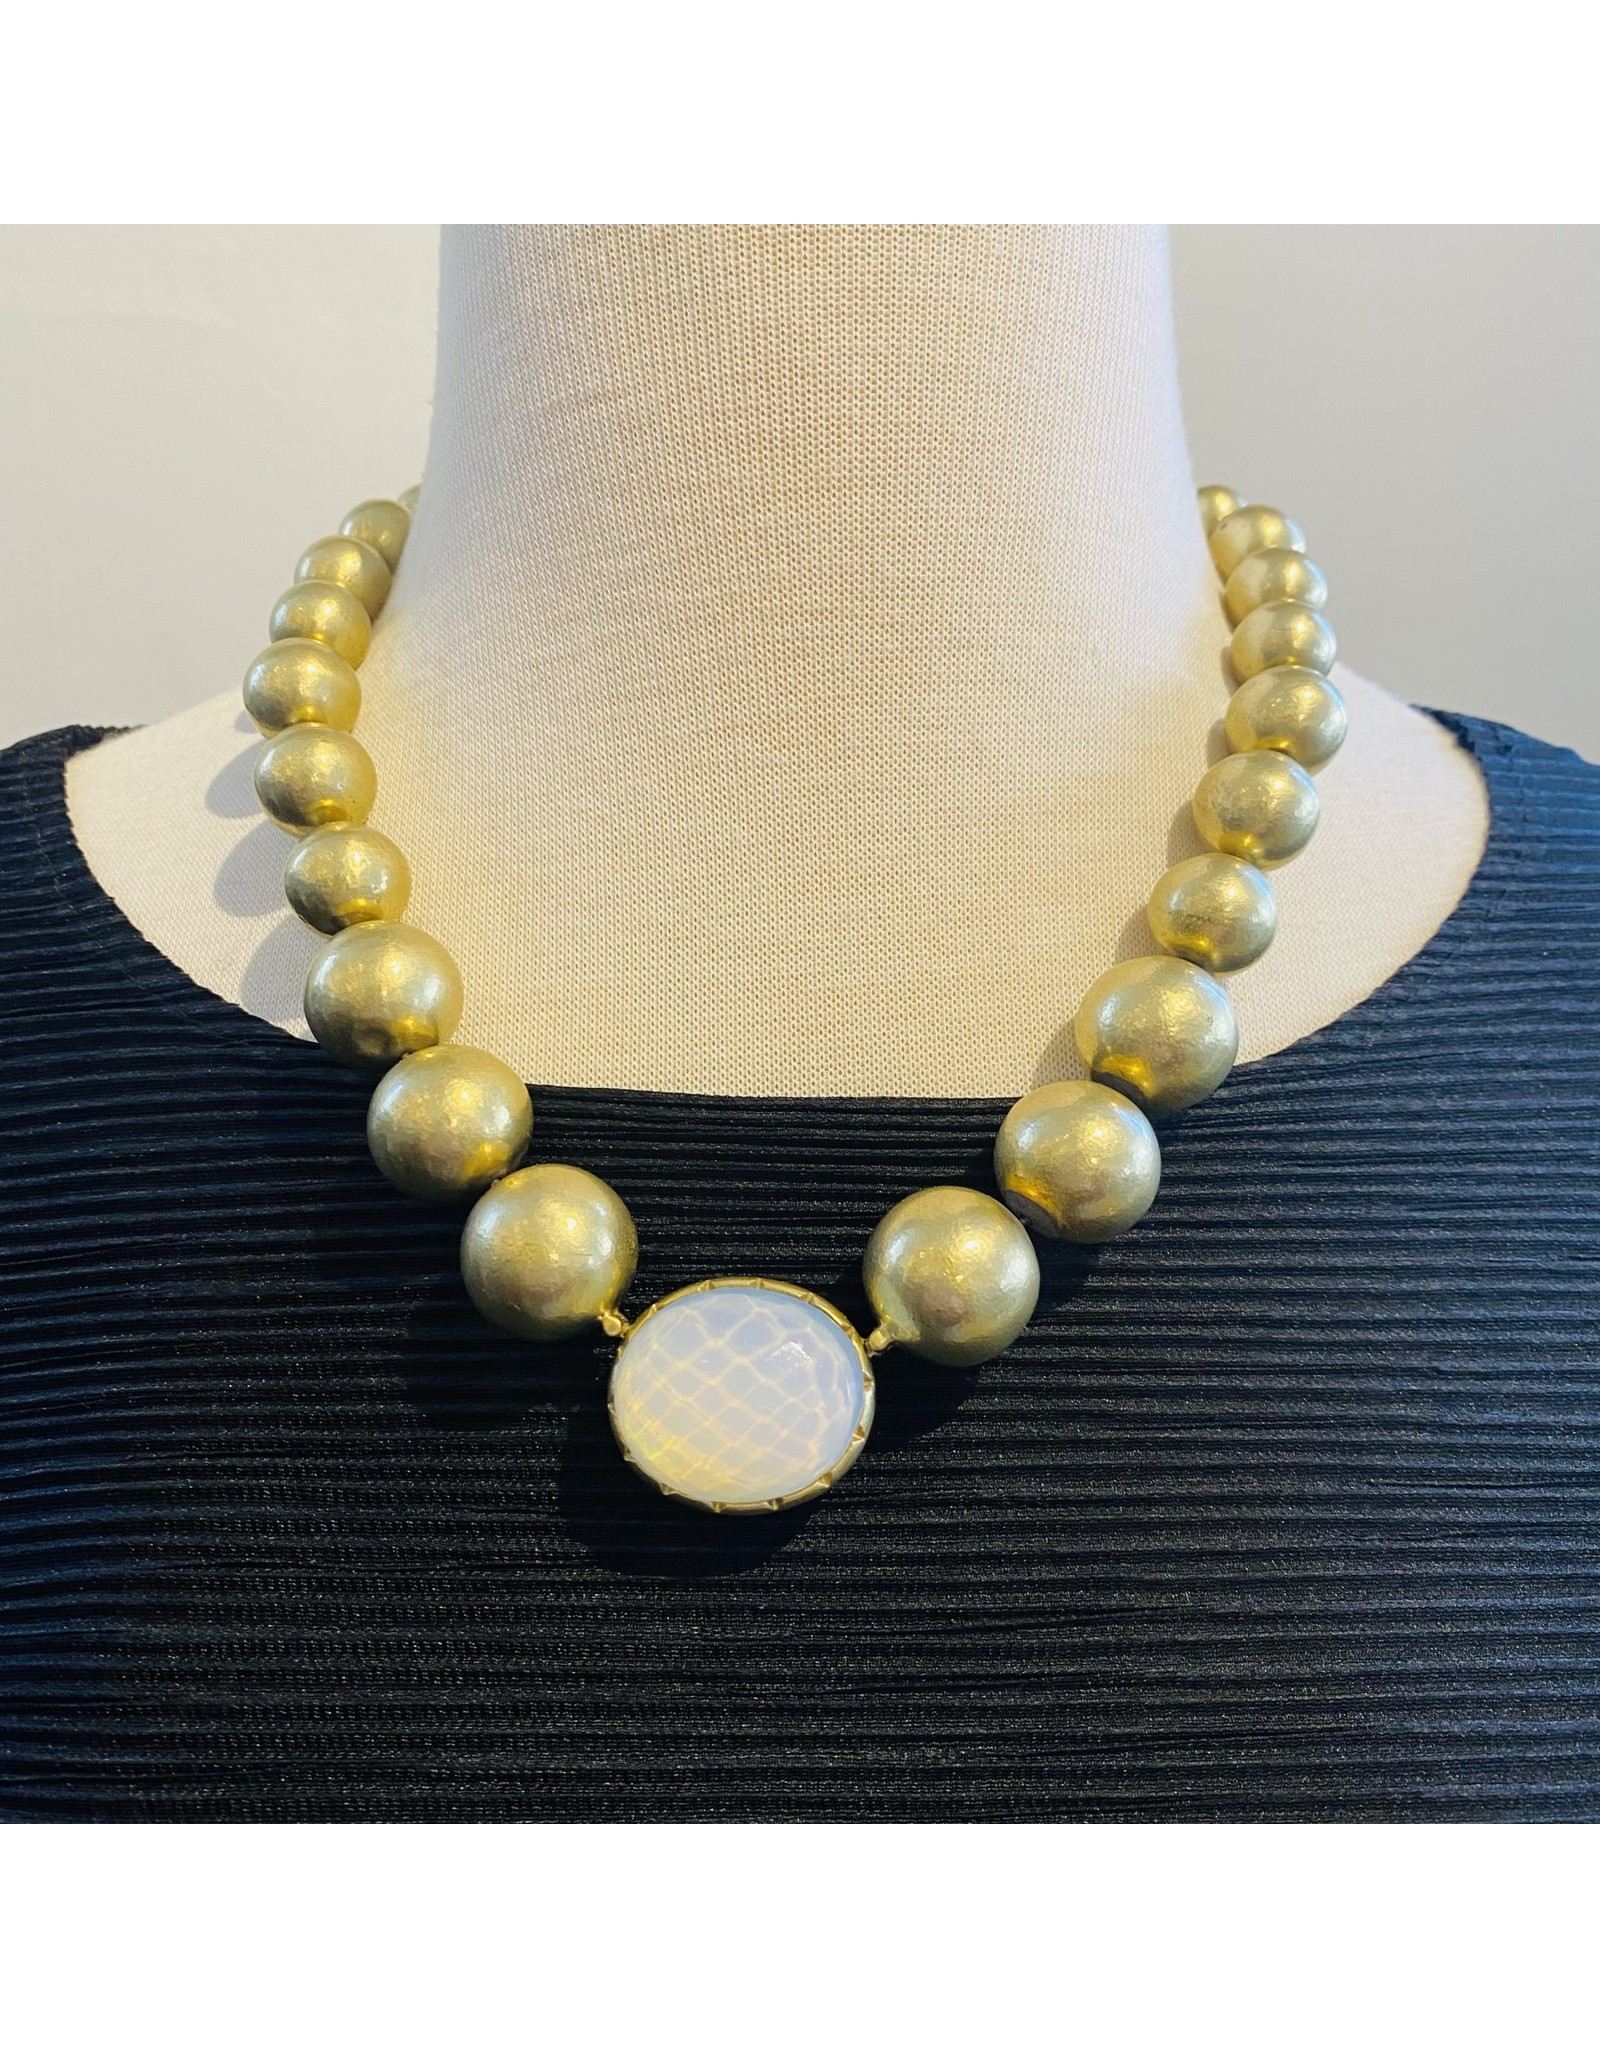 Vaubel Double Sided: Eggplant and White Bezel w/Gold Orbs Chain